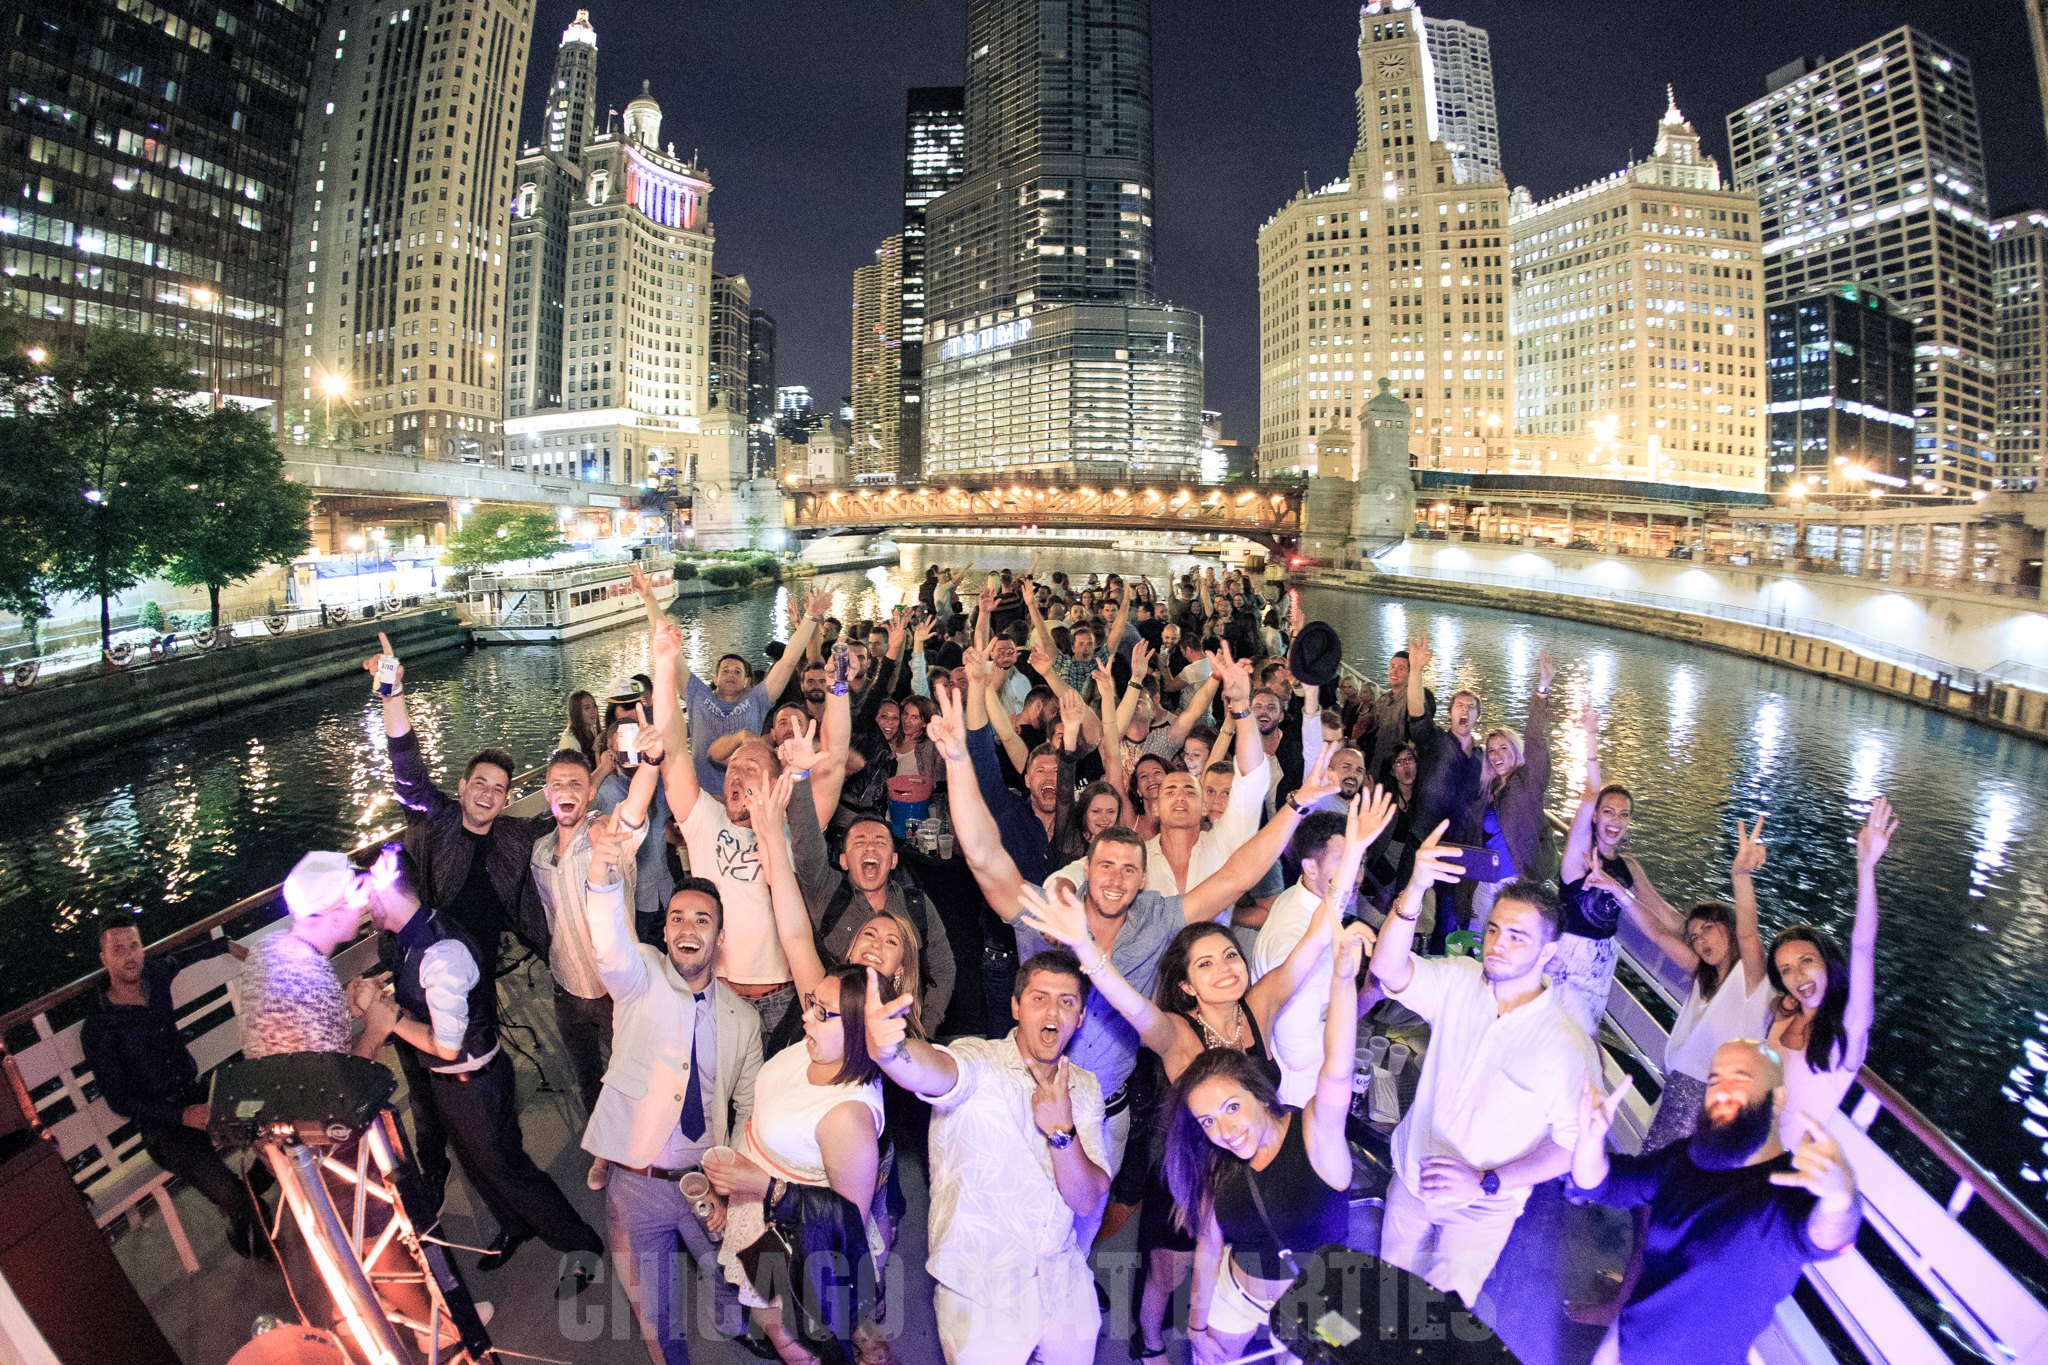 Chicago's Boat Party of Summer 2017 - Saturday, June 24th, 2017